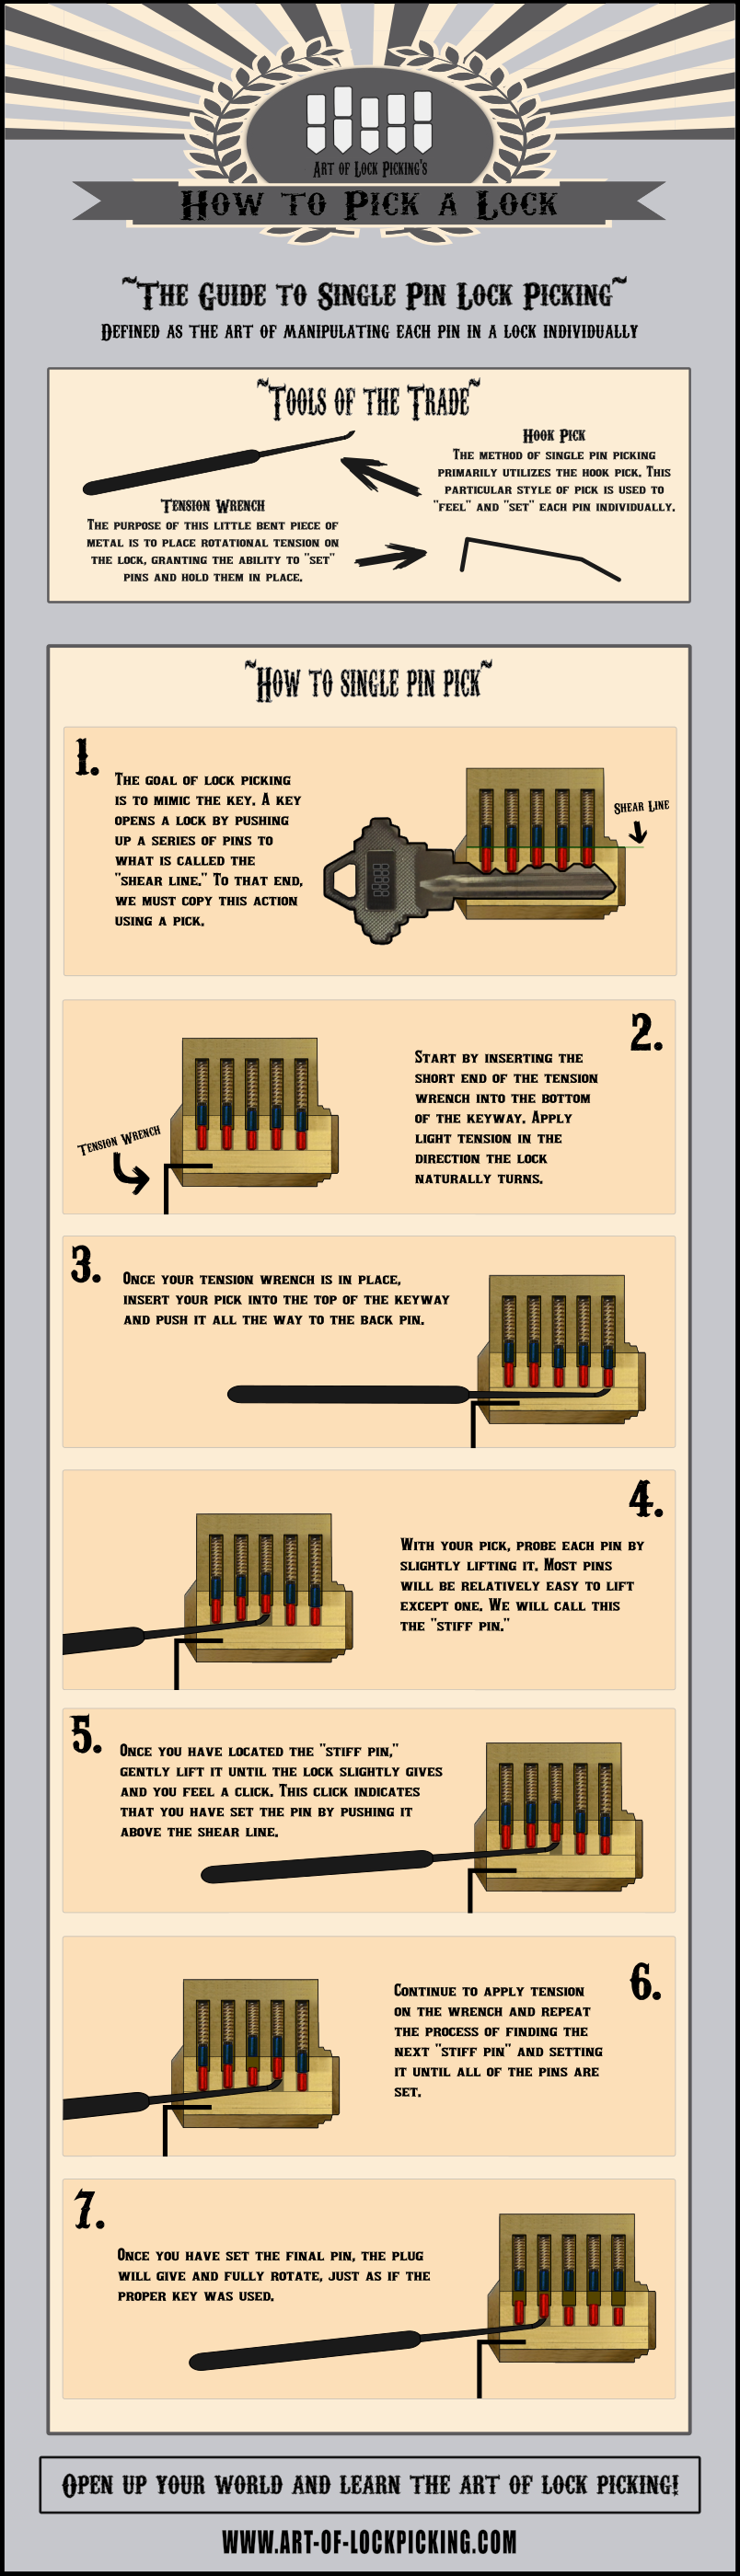 The Guide to Single Pick Lock Picking